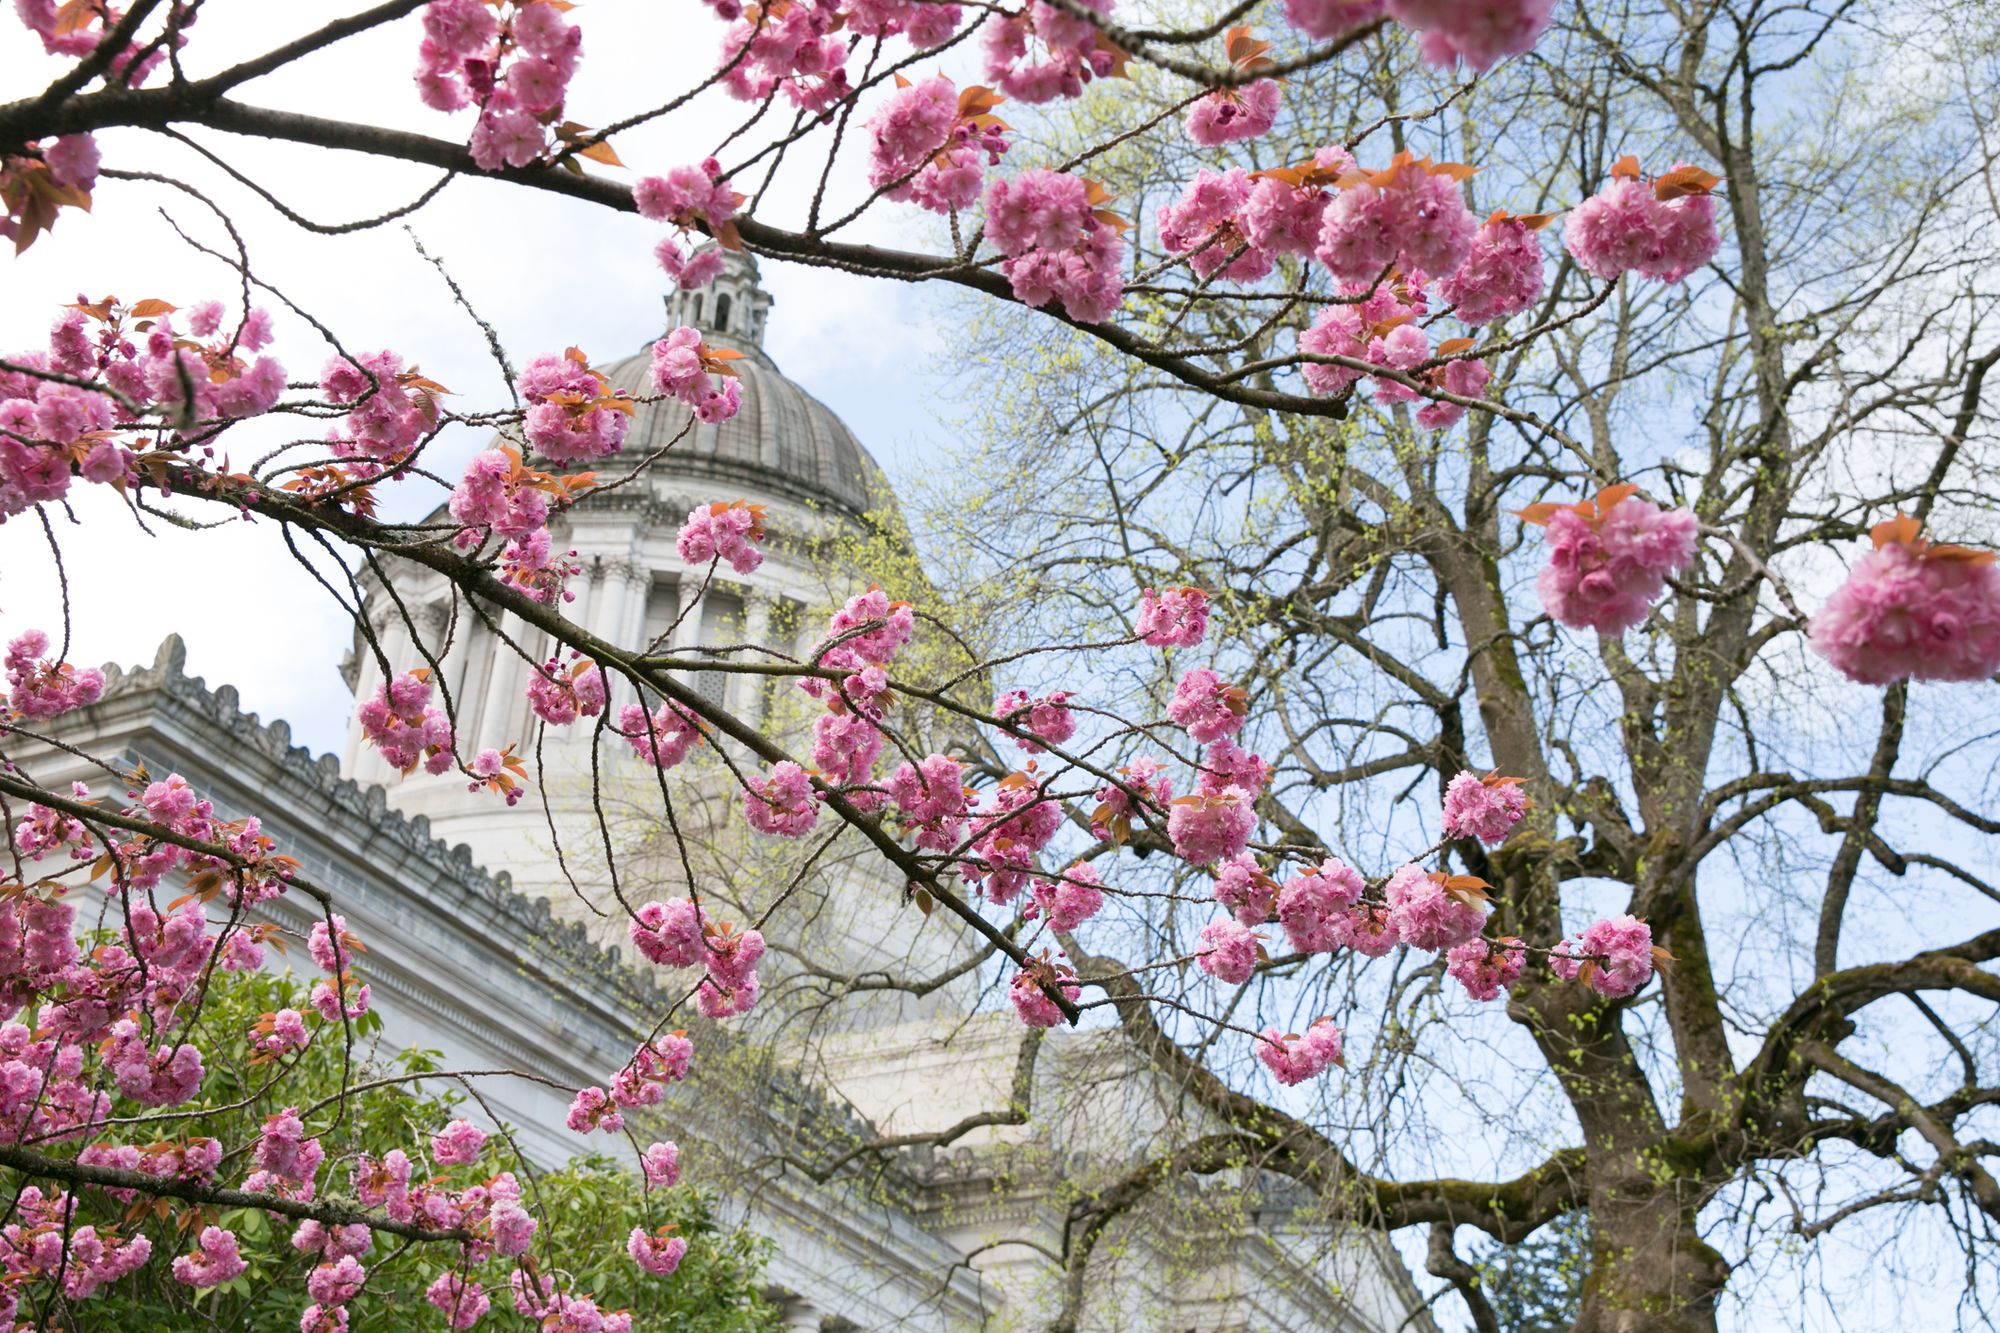 Capitol with cherry blossoms